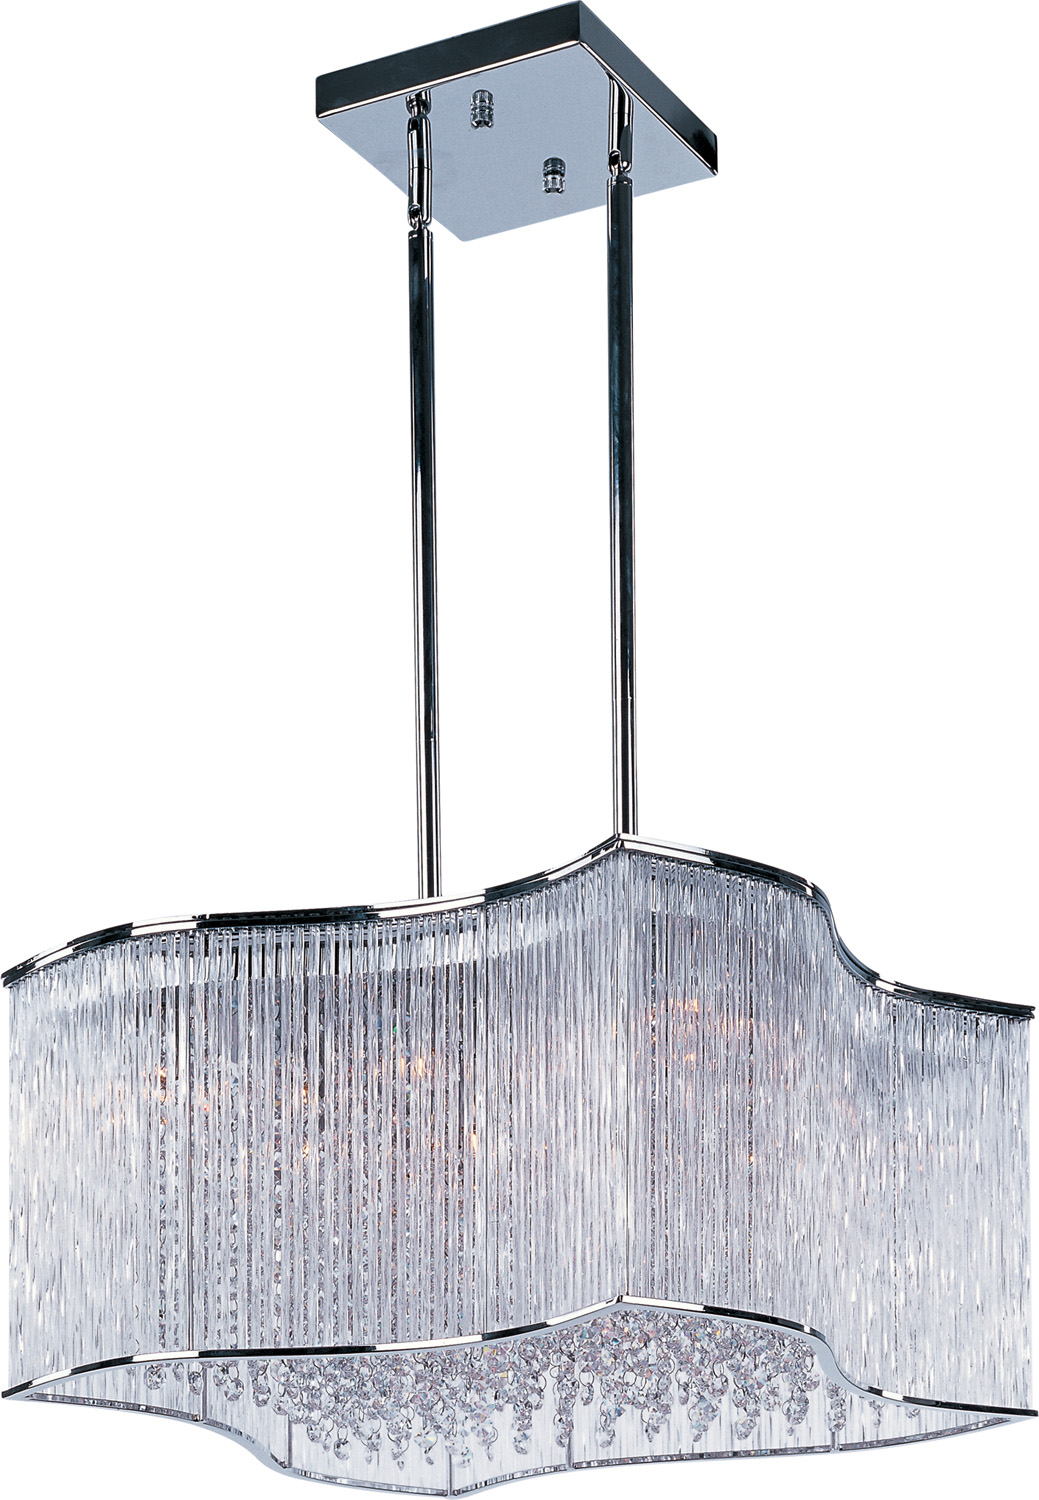 20 Light Pendant from the Swizzle collection by Maxim 39705CLPC